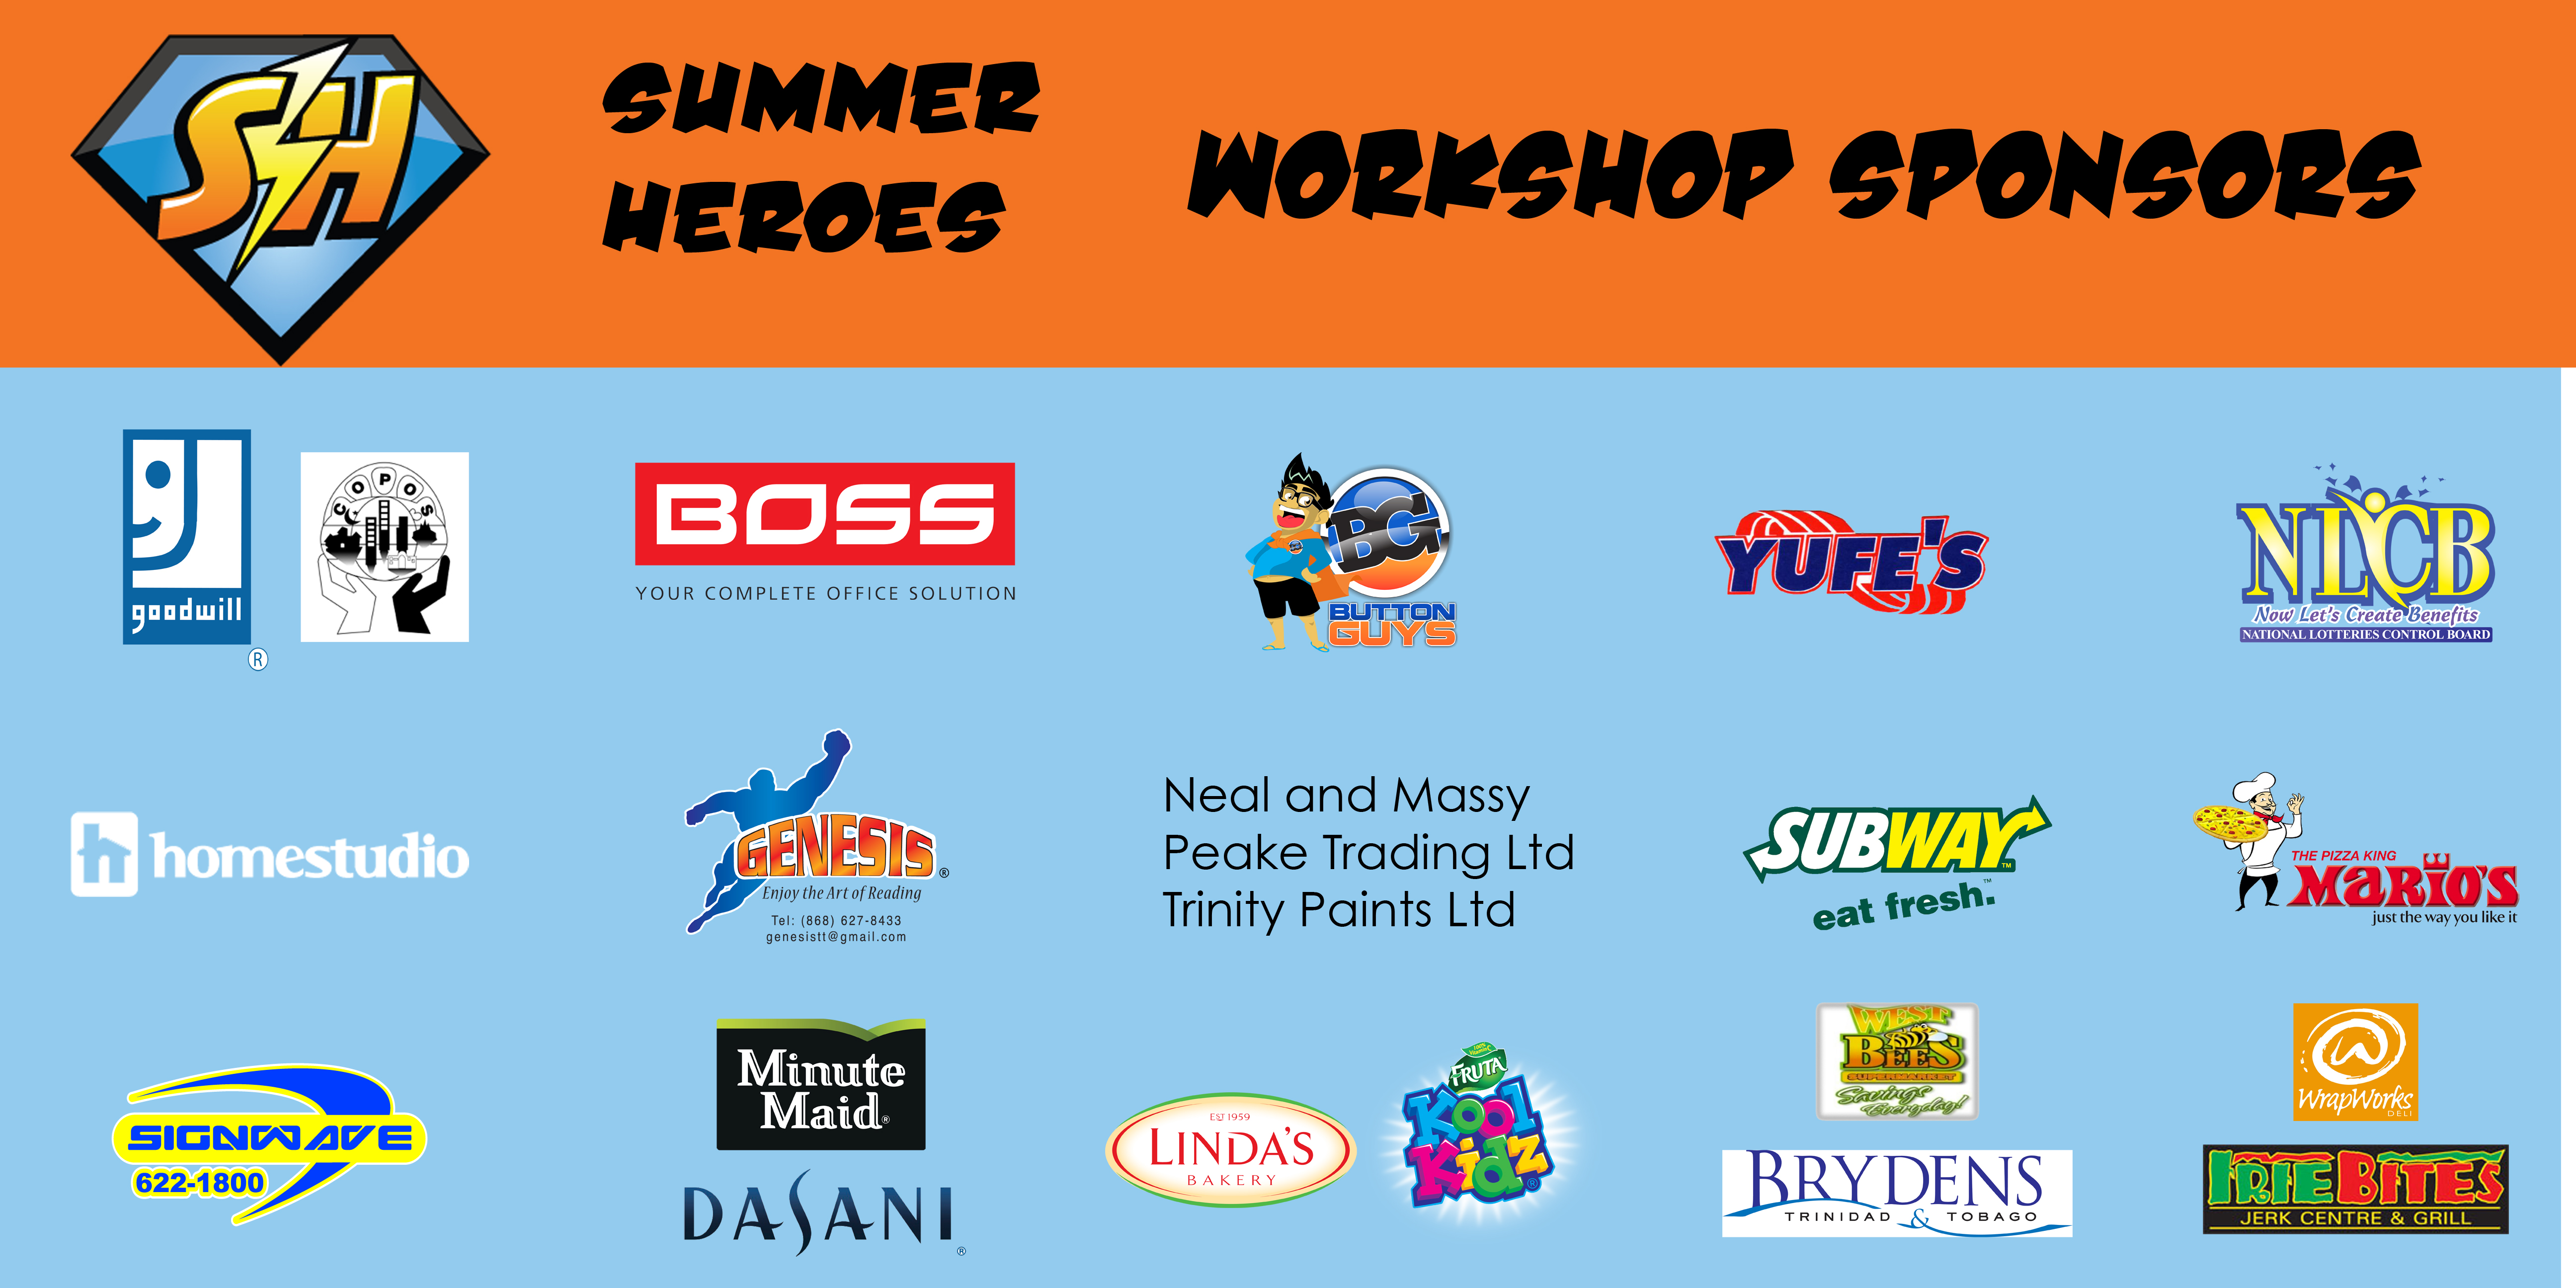 BANNER SH 2013 WORKSHOP SPONSORS